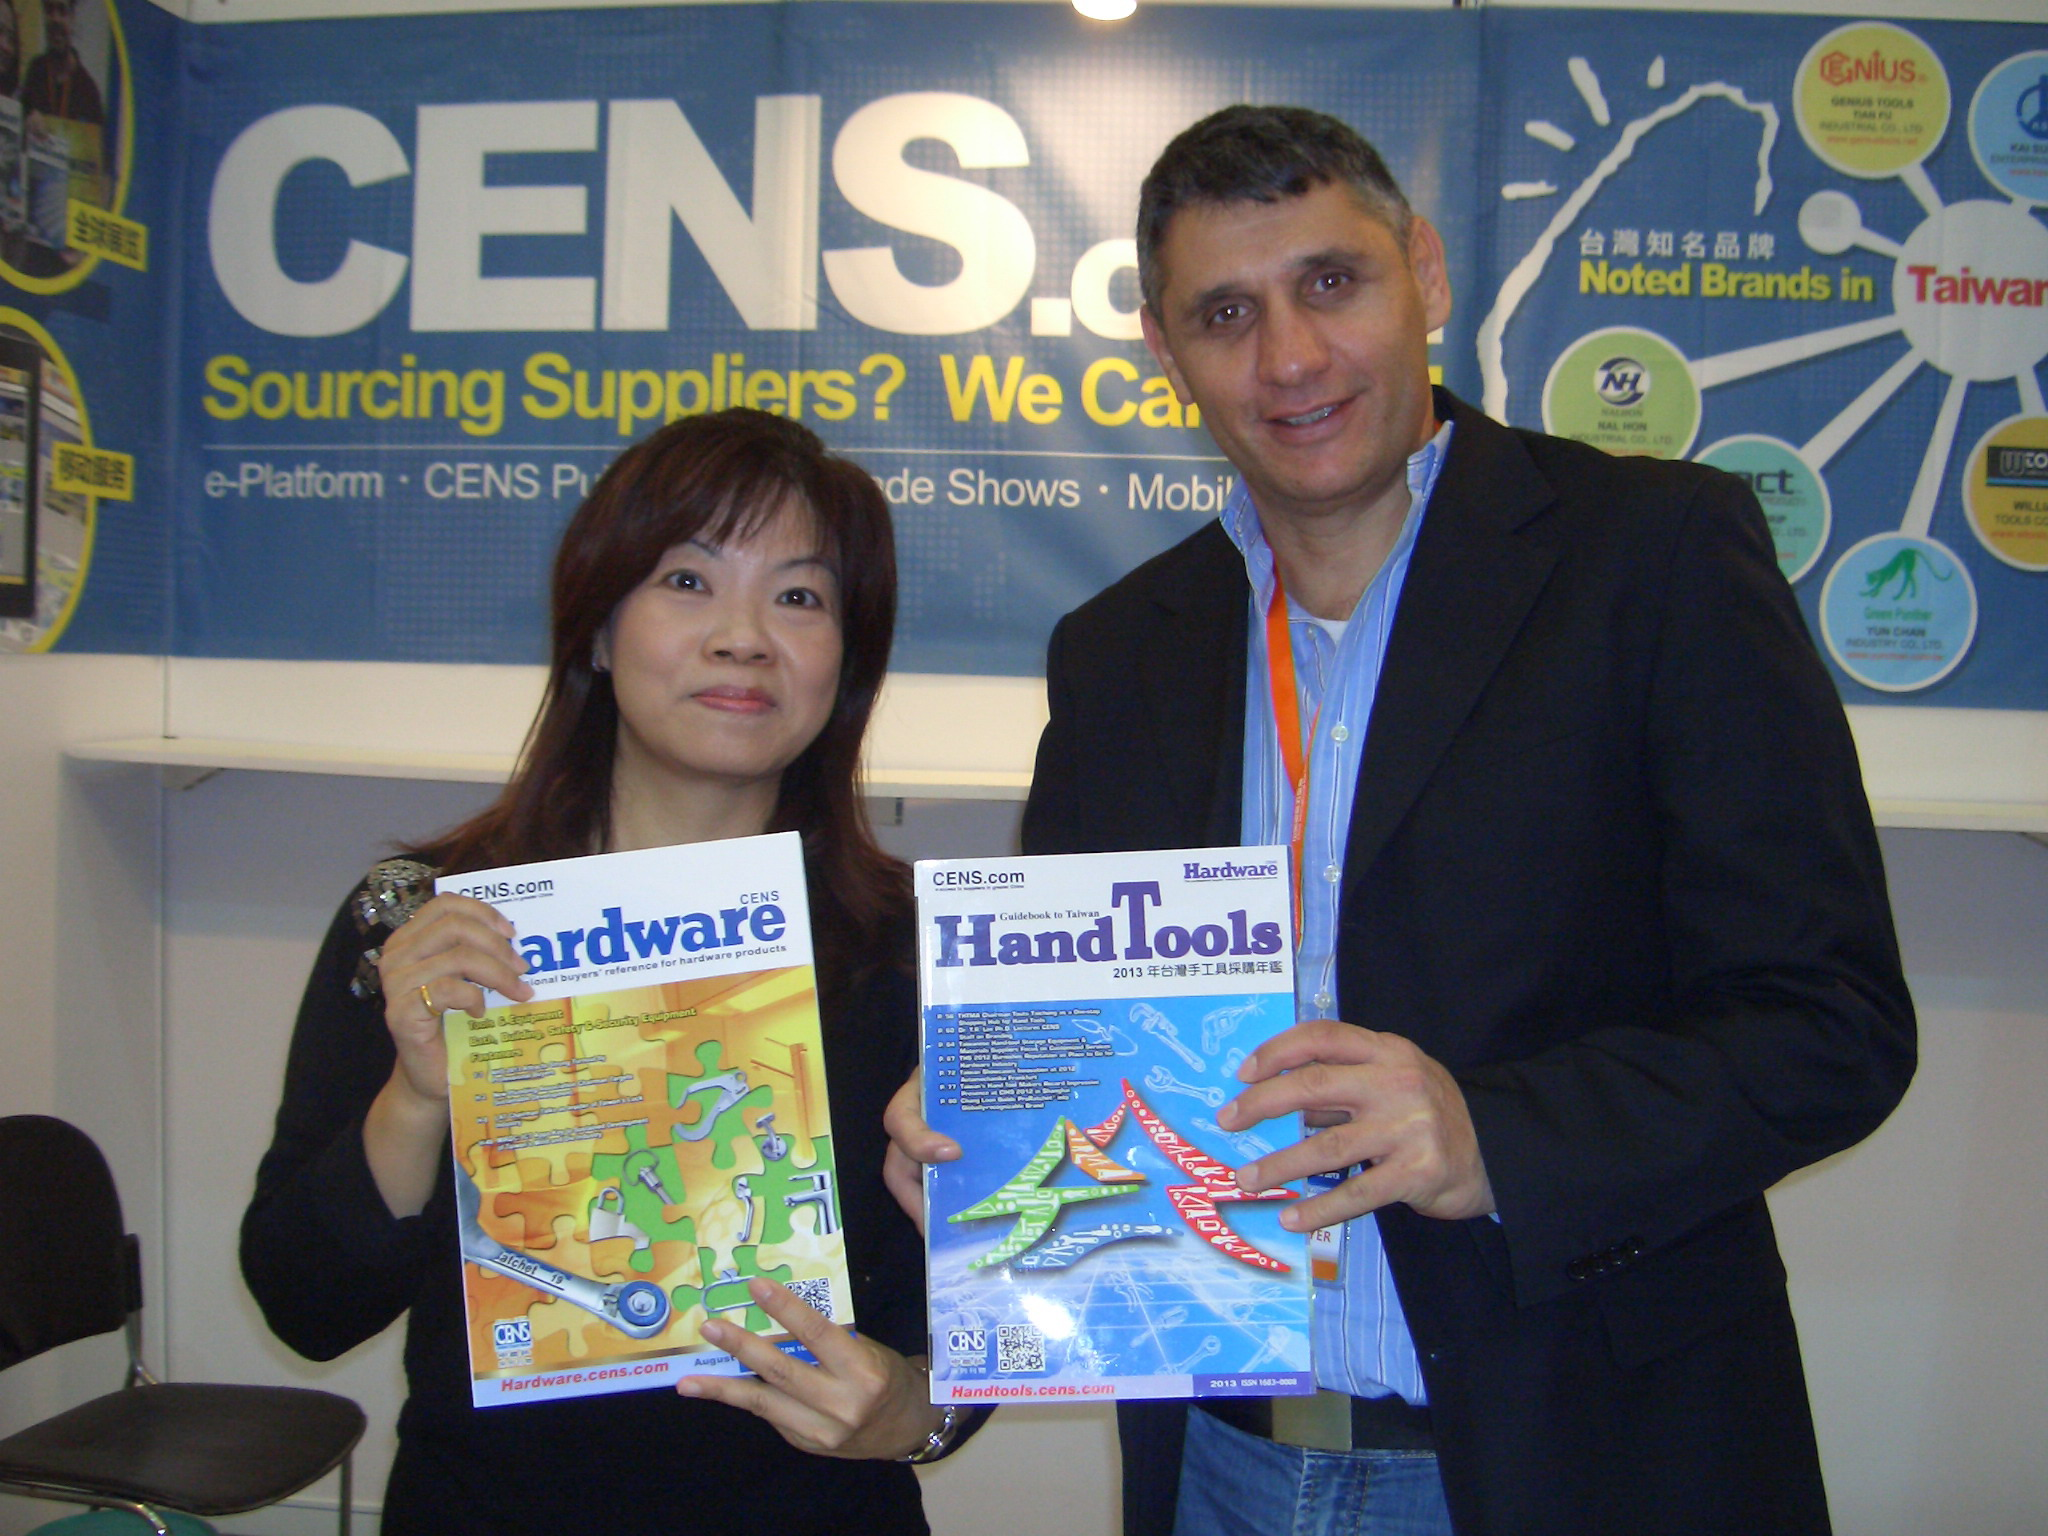 Foreign buyers at CIHS 2013 with CENS buyer guides.